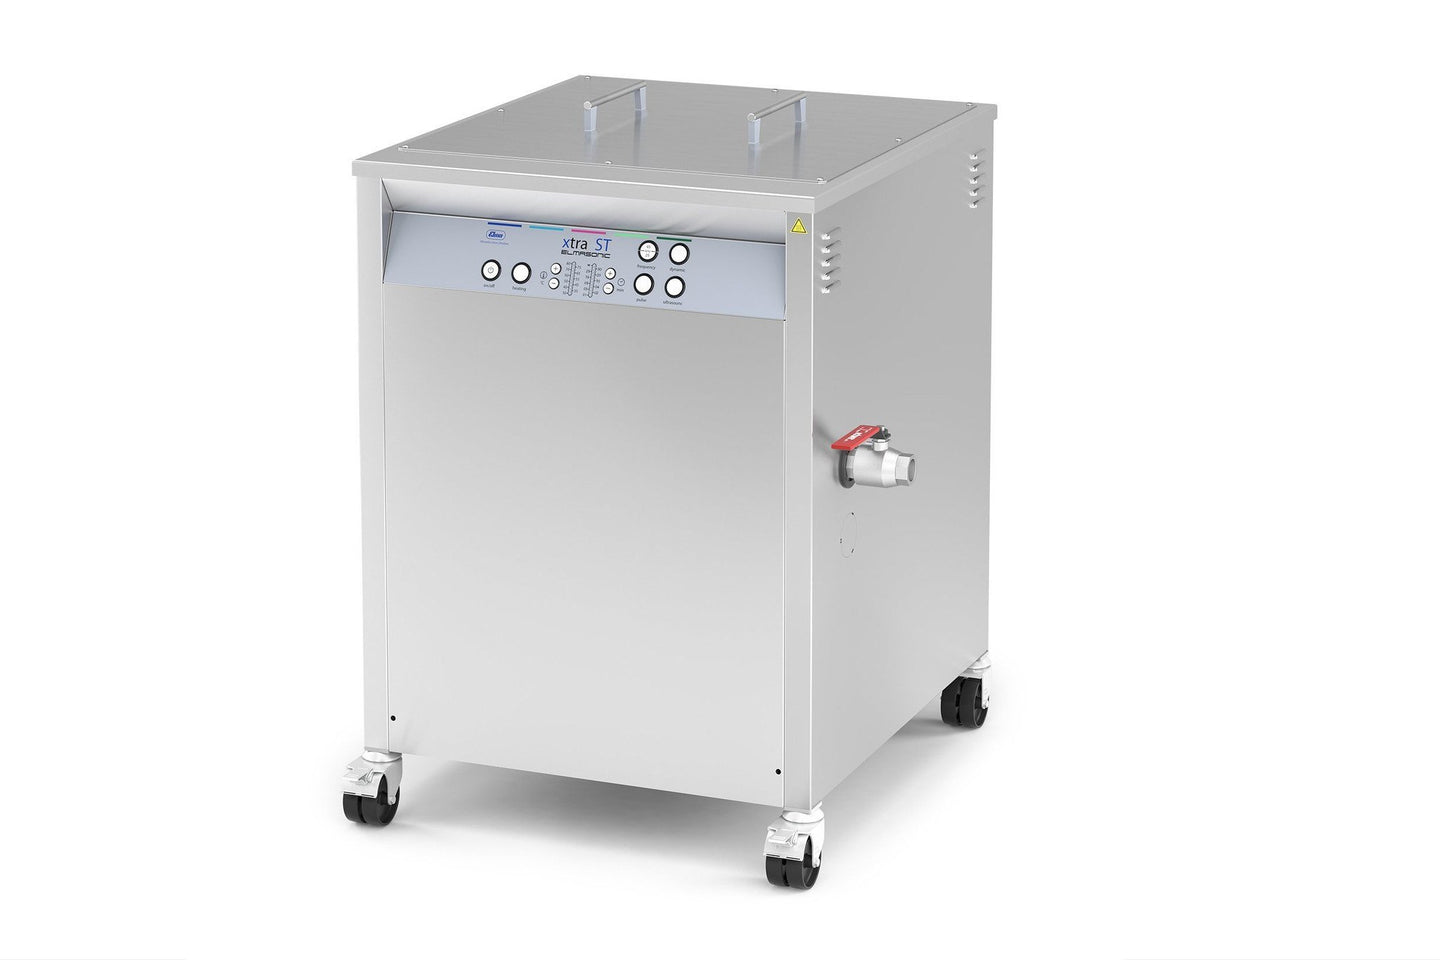 Elmasonic Xtra ST1400H | Industrial Ultrasonic Cleaner | 33 GAL - leadsonics